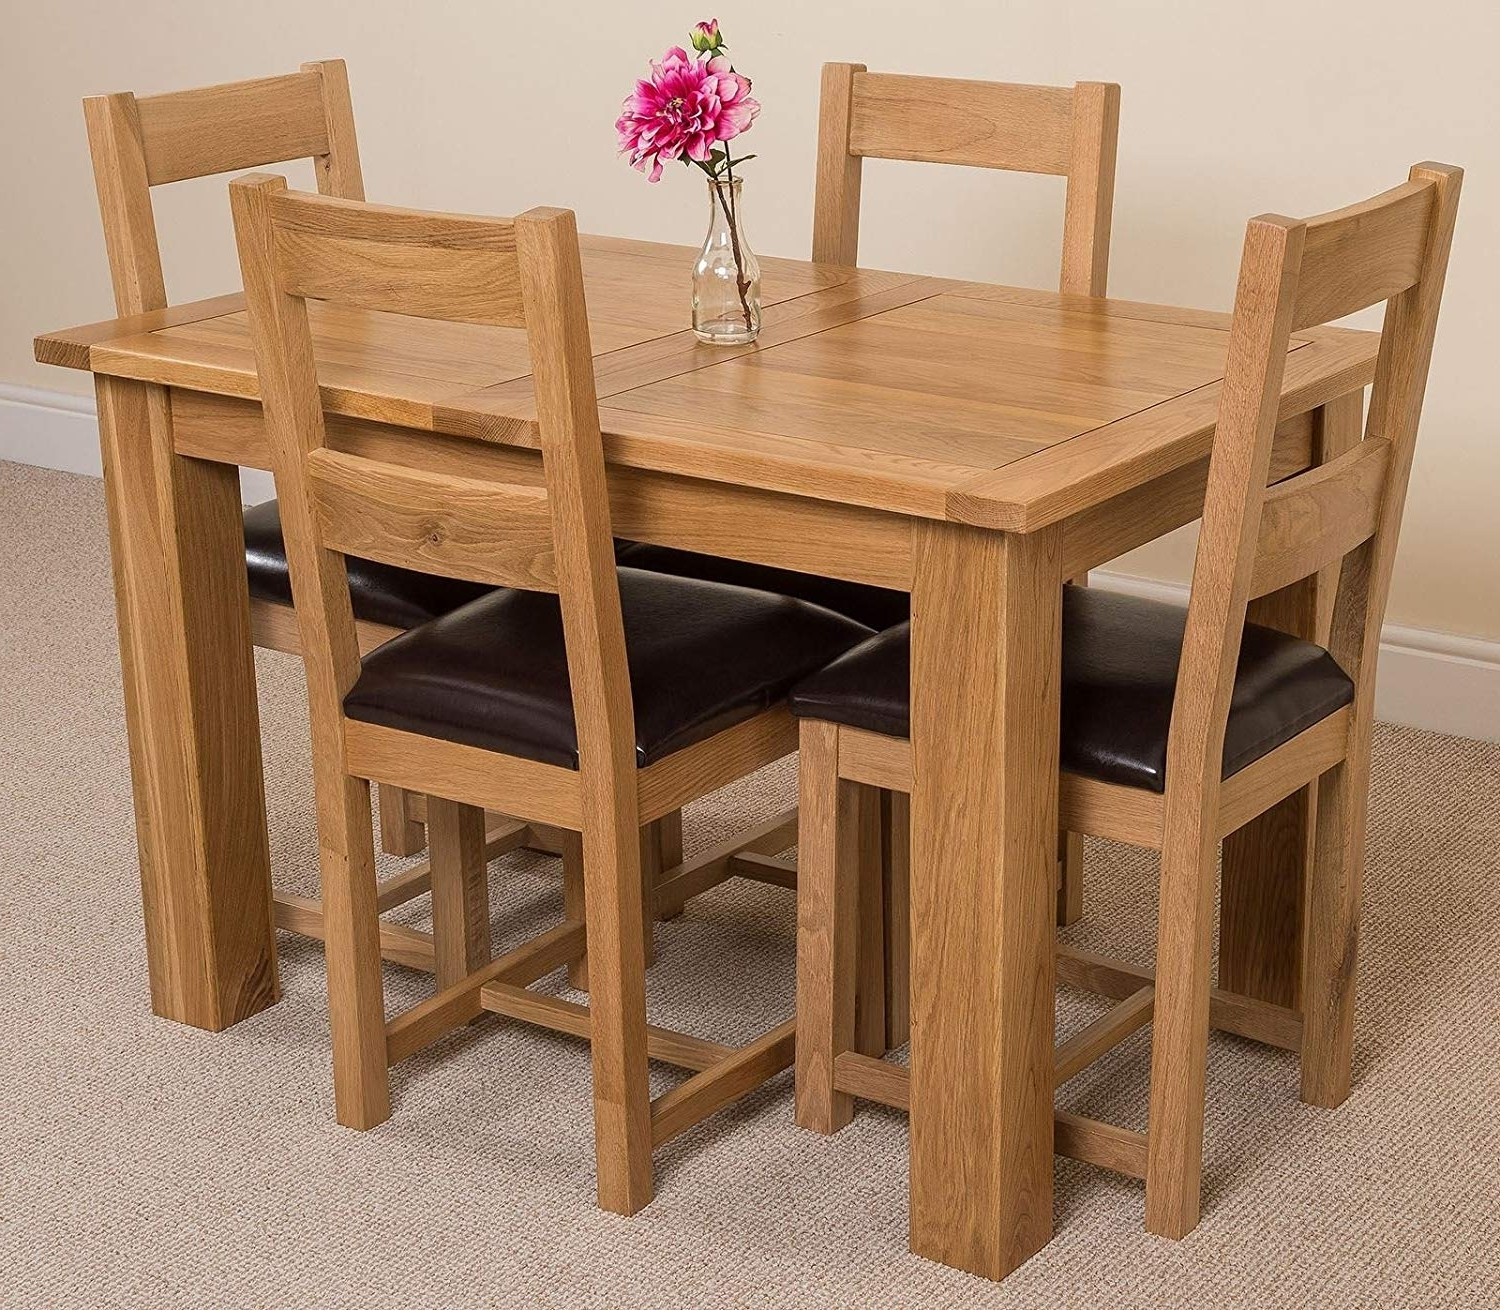 Hampton Solid Oak (120 160 Cm) Extending Dining Table & 4 Lincoln With Regard To Most Recently Released Extending Dining Tables Set (View 10 of 25)